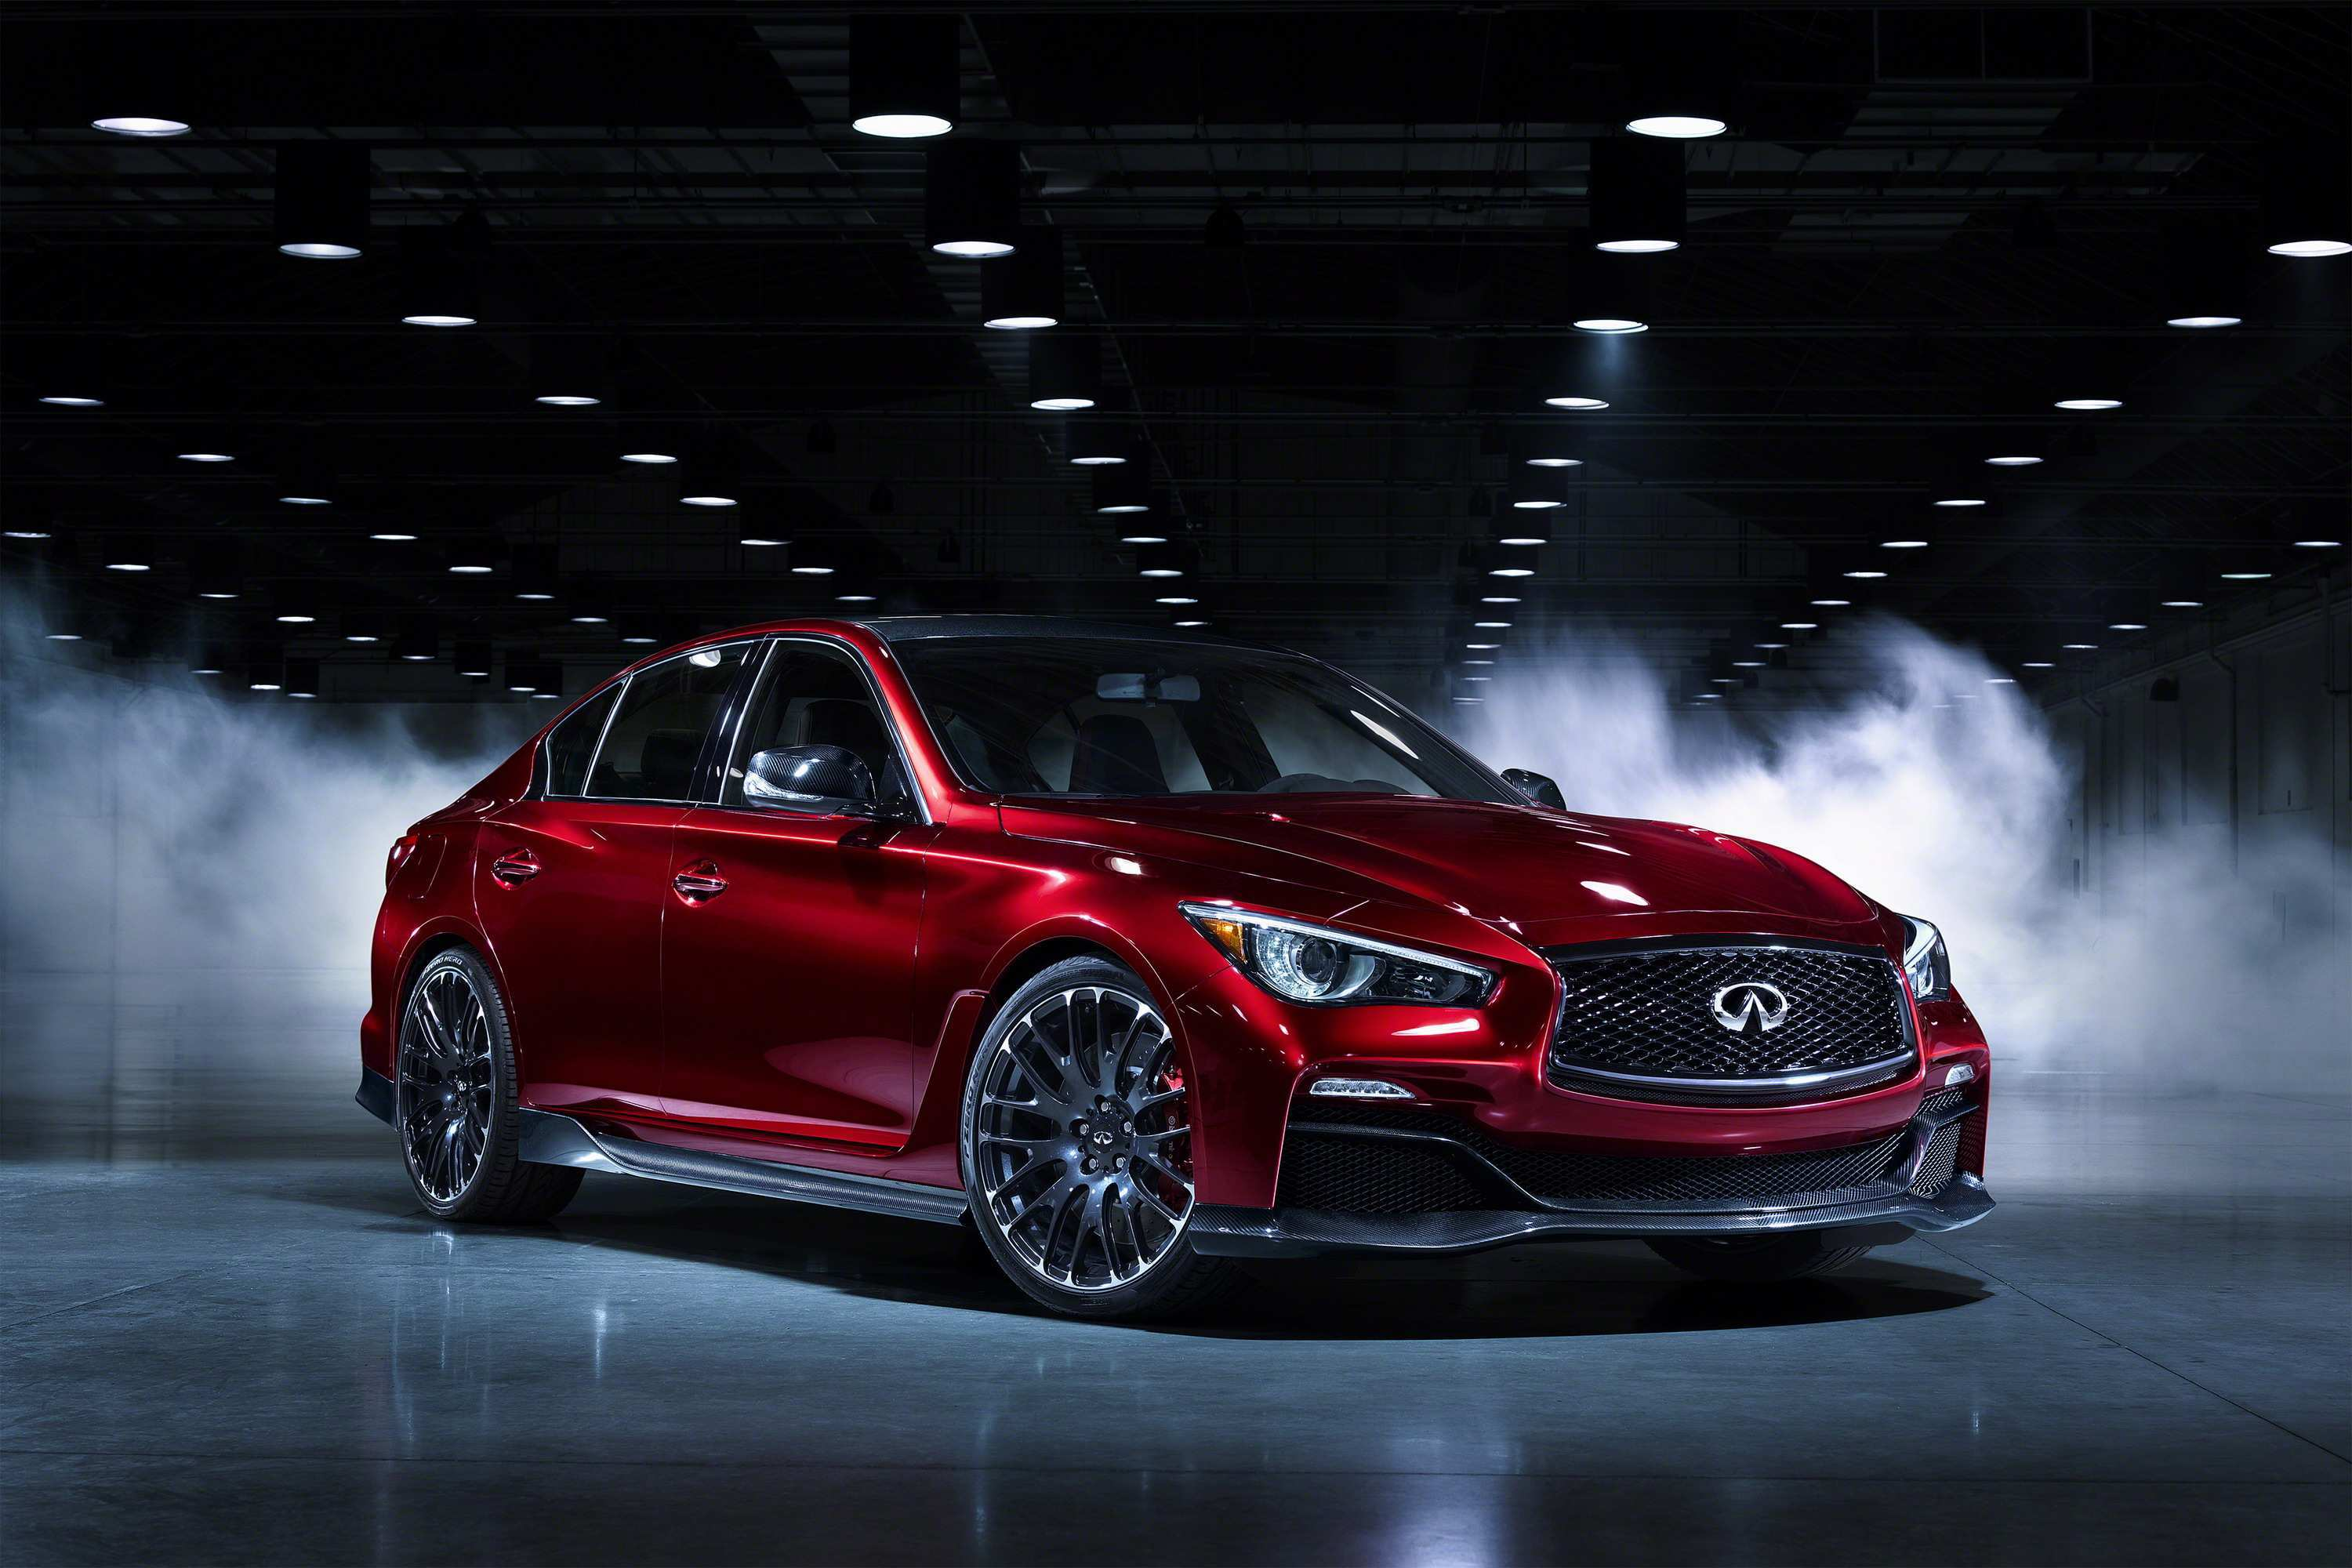 93 The Q50 Eau Rouge Pricing Spy Shoot with Q50 Eau Rouge Pricing